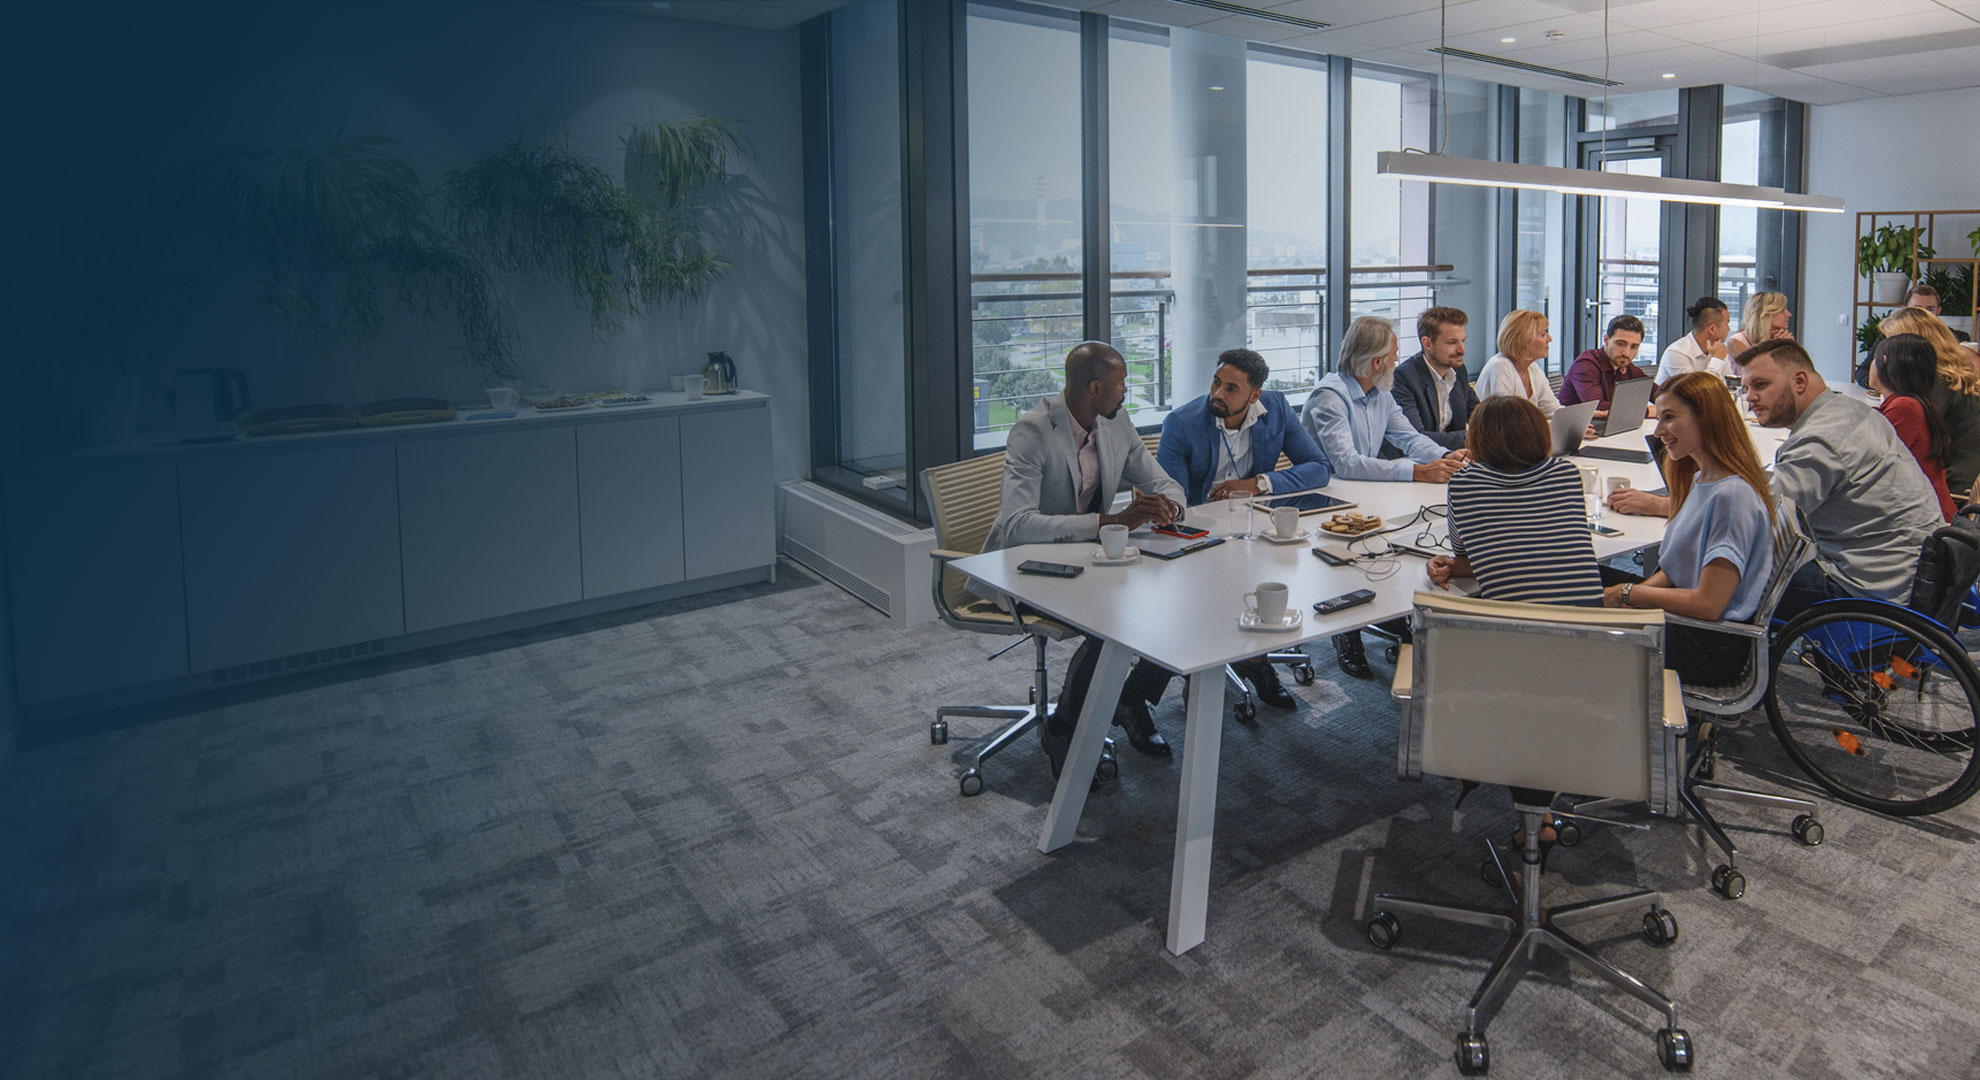 A group of people having a meeting in a large meeting room